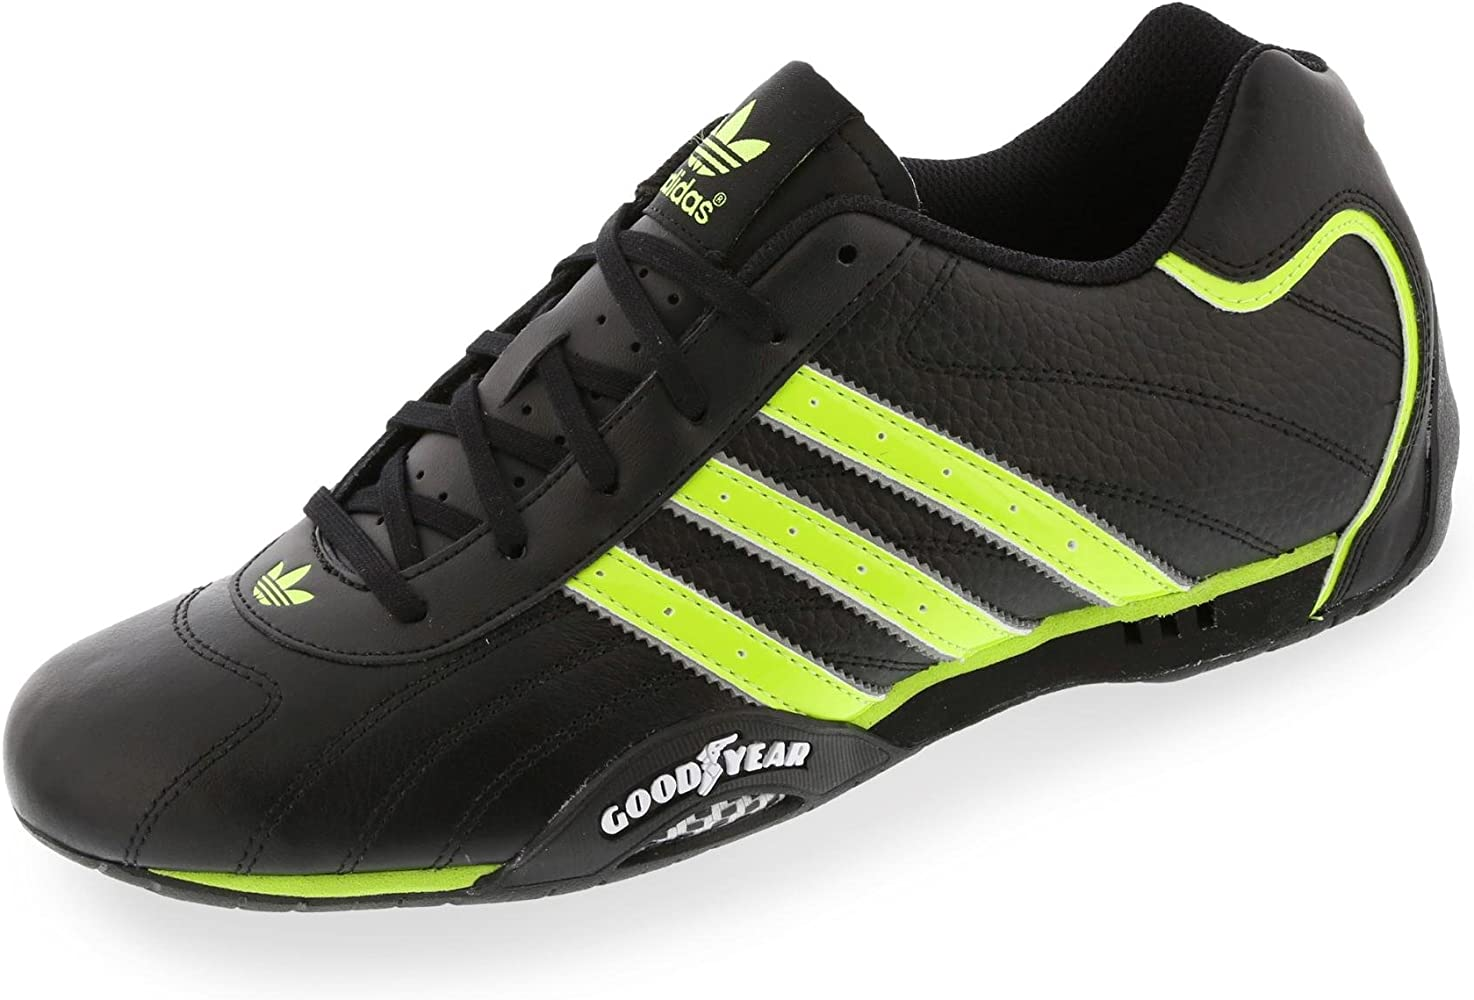 Originals adiRacer Low Black D65637